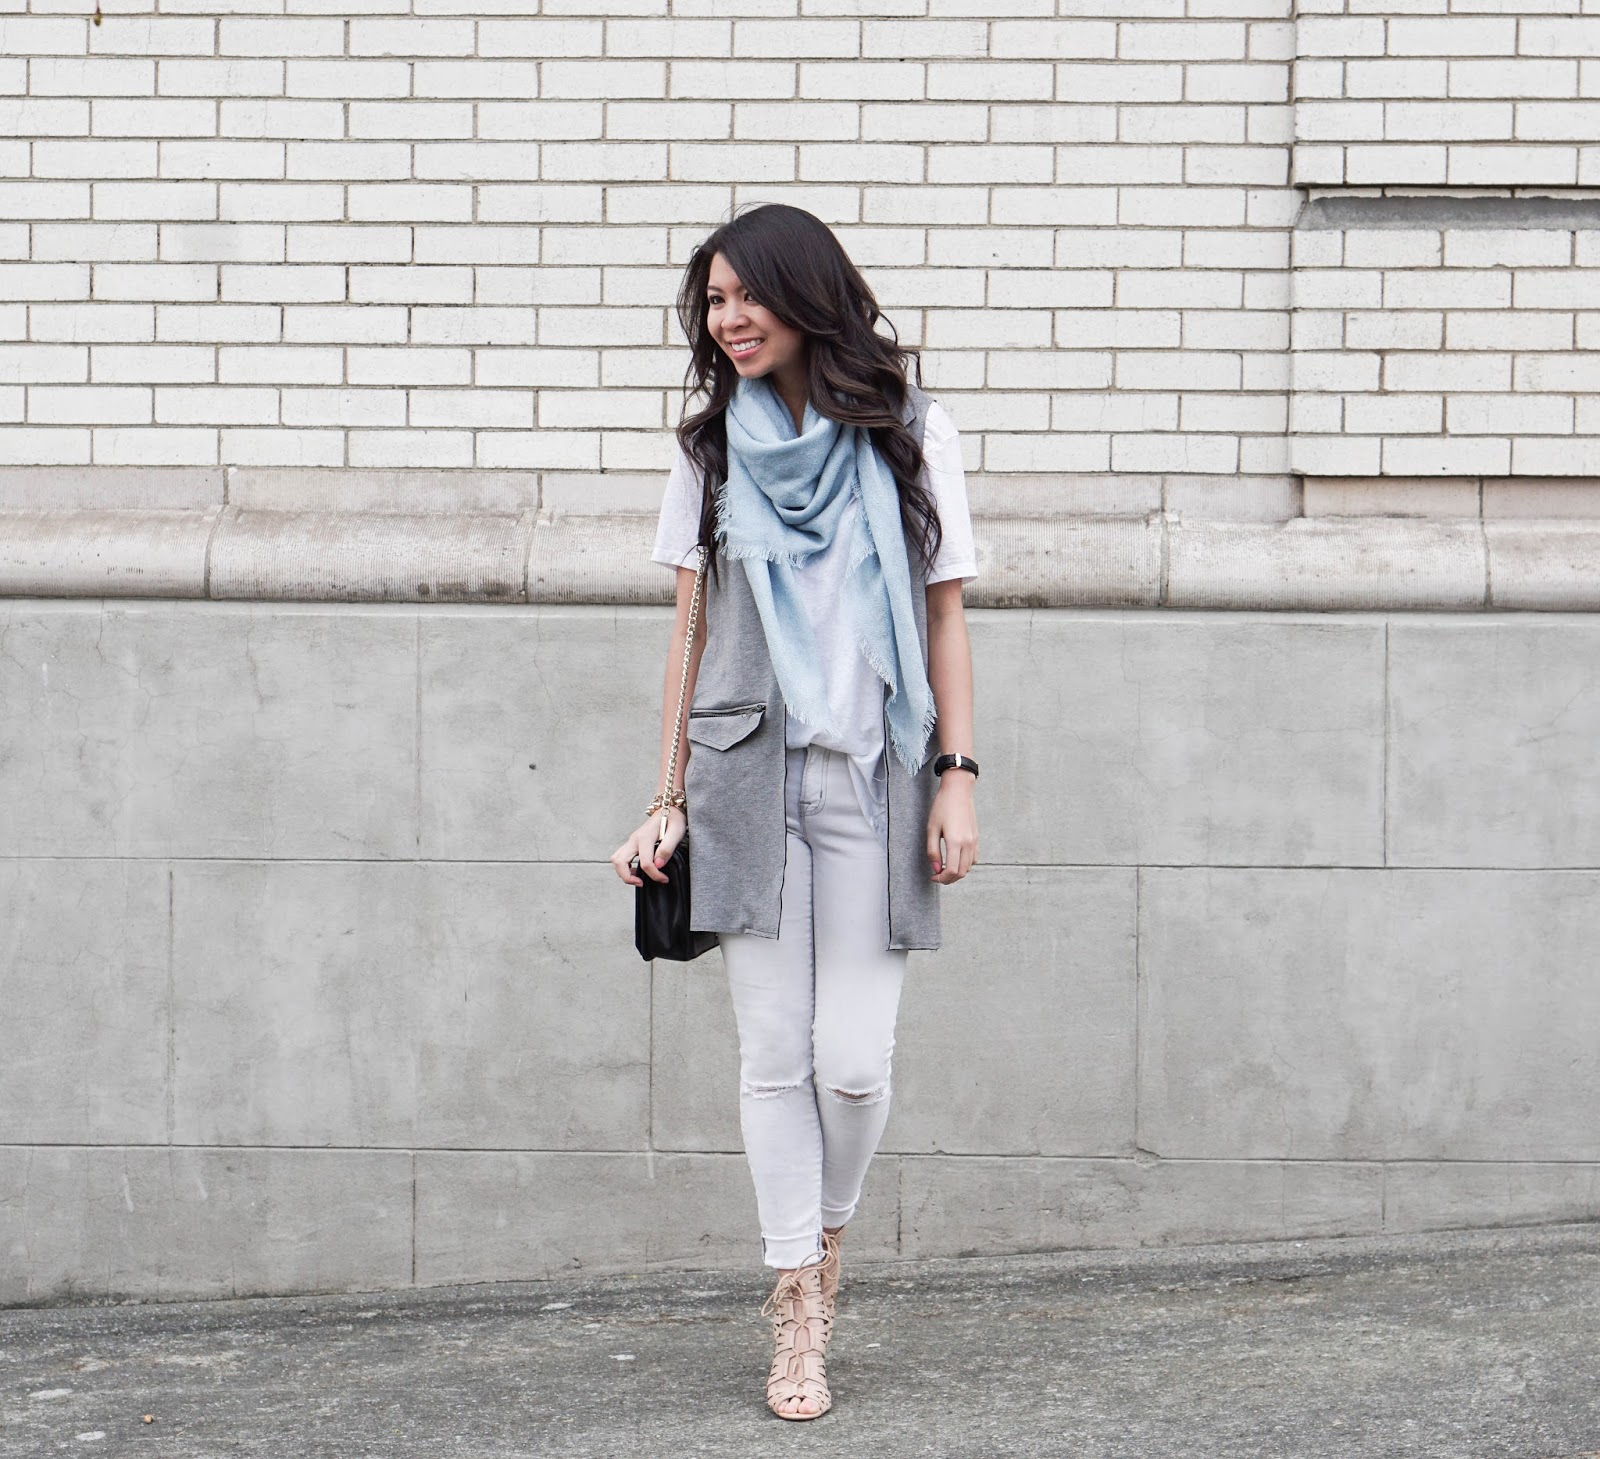 f6c0641624 White Vest And Jeans Outfit